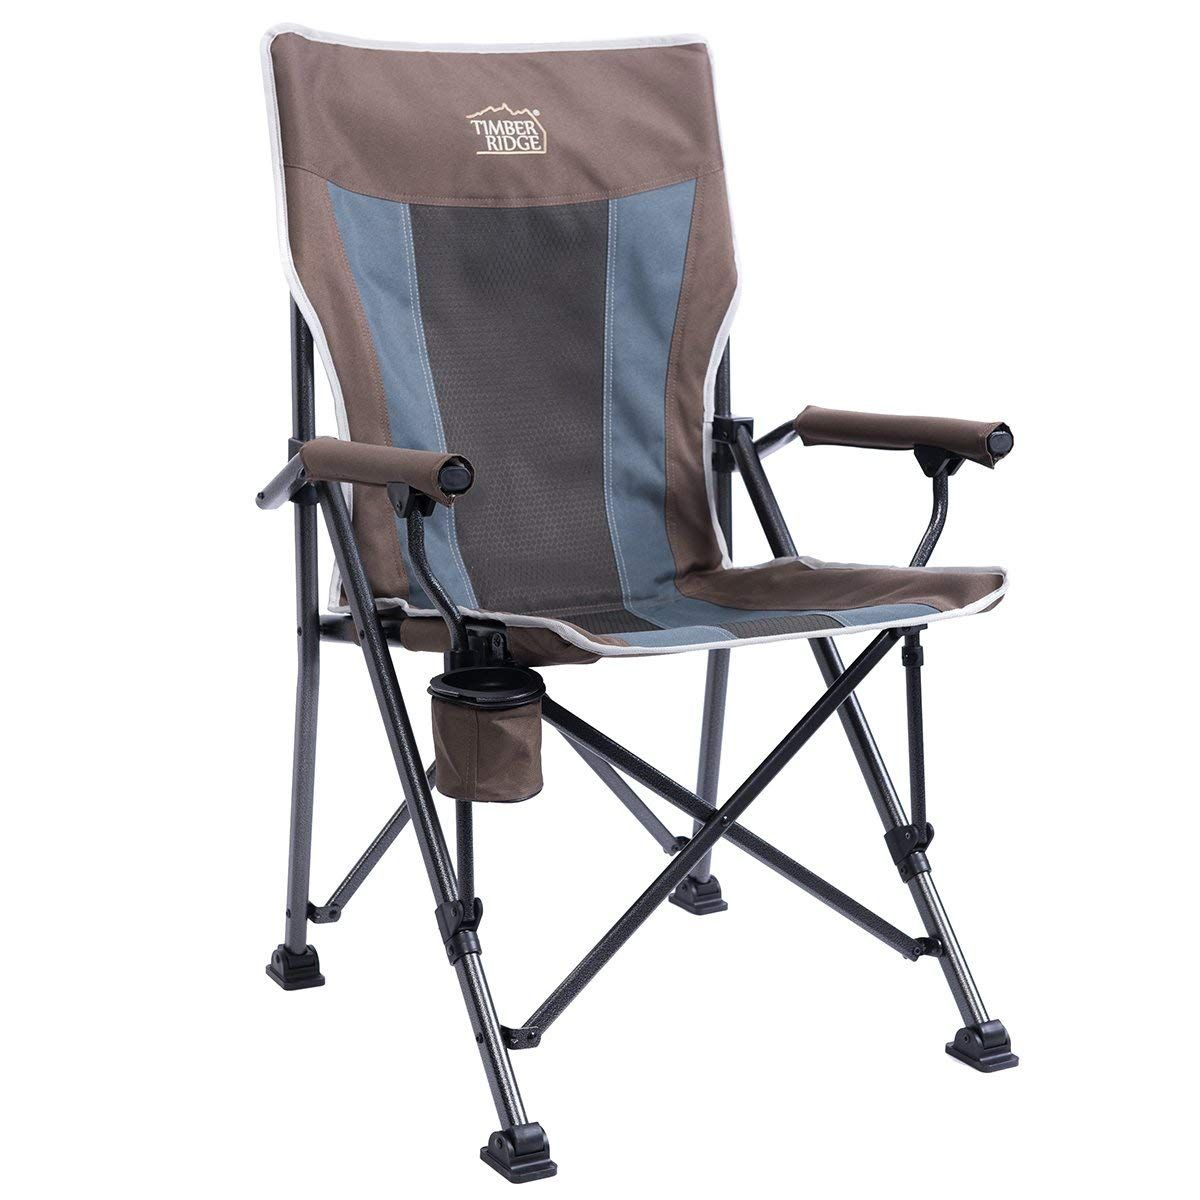 Ergonomic Folding Chair Ikea Metal Timber Ridge Camping High Back Support 300lbs With Carry Bag Quad Outdoor Heavy Duty Padded Armrest Cup Holder See The